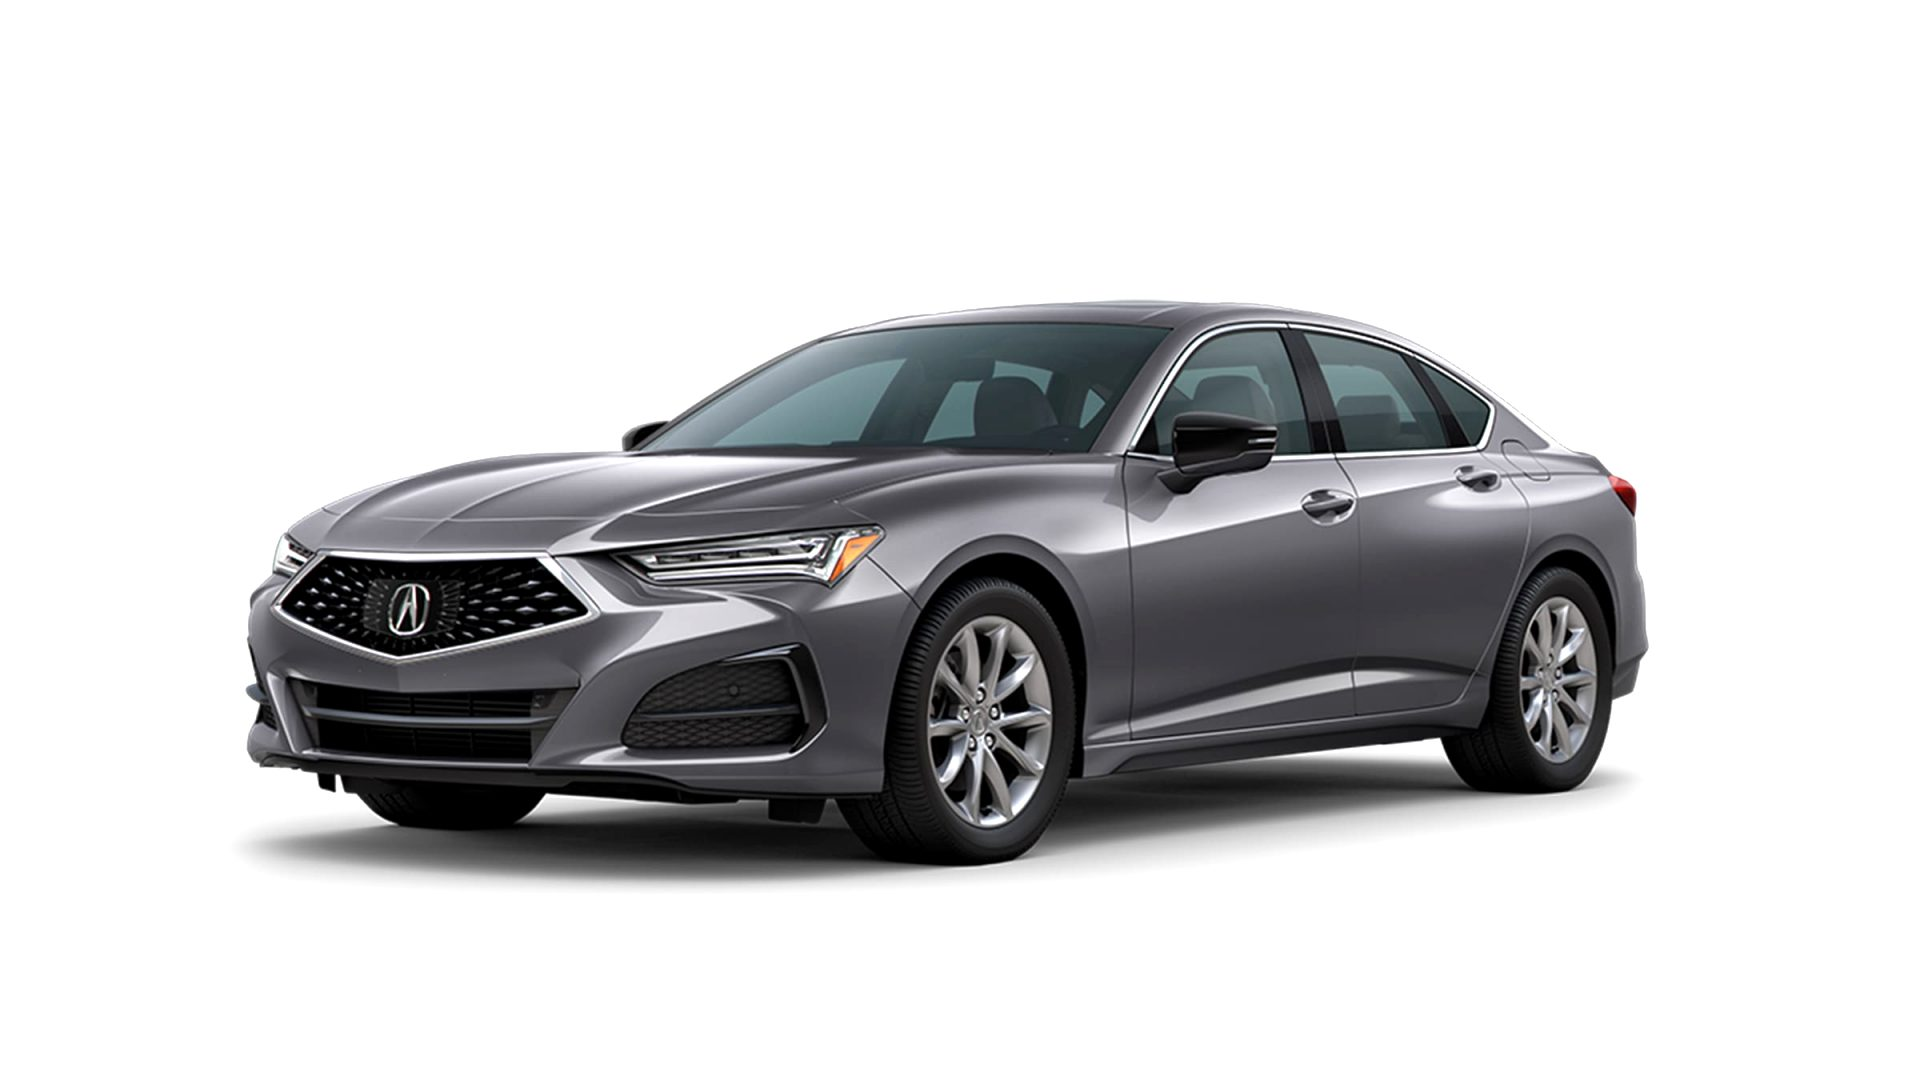 acura deals june 2021 First Drive